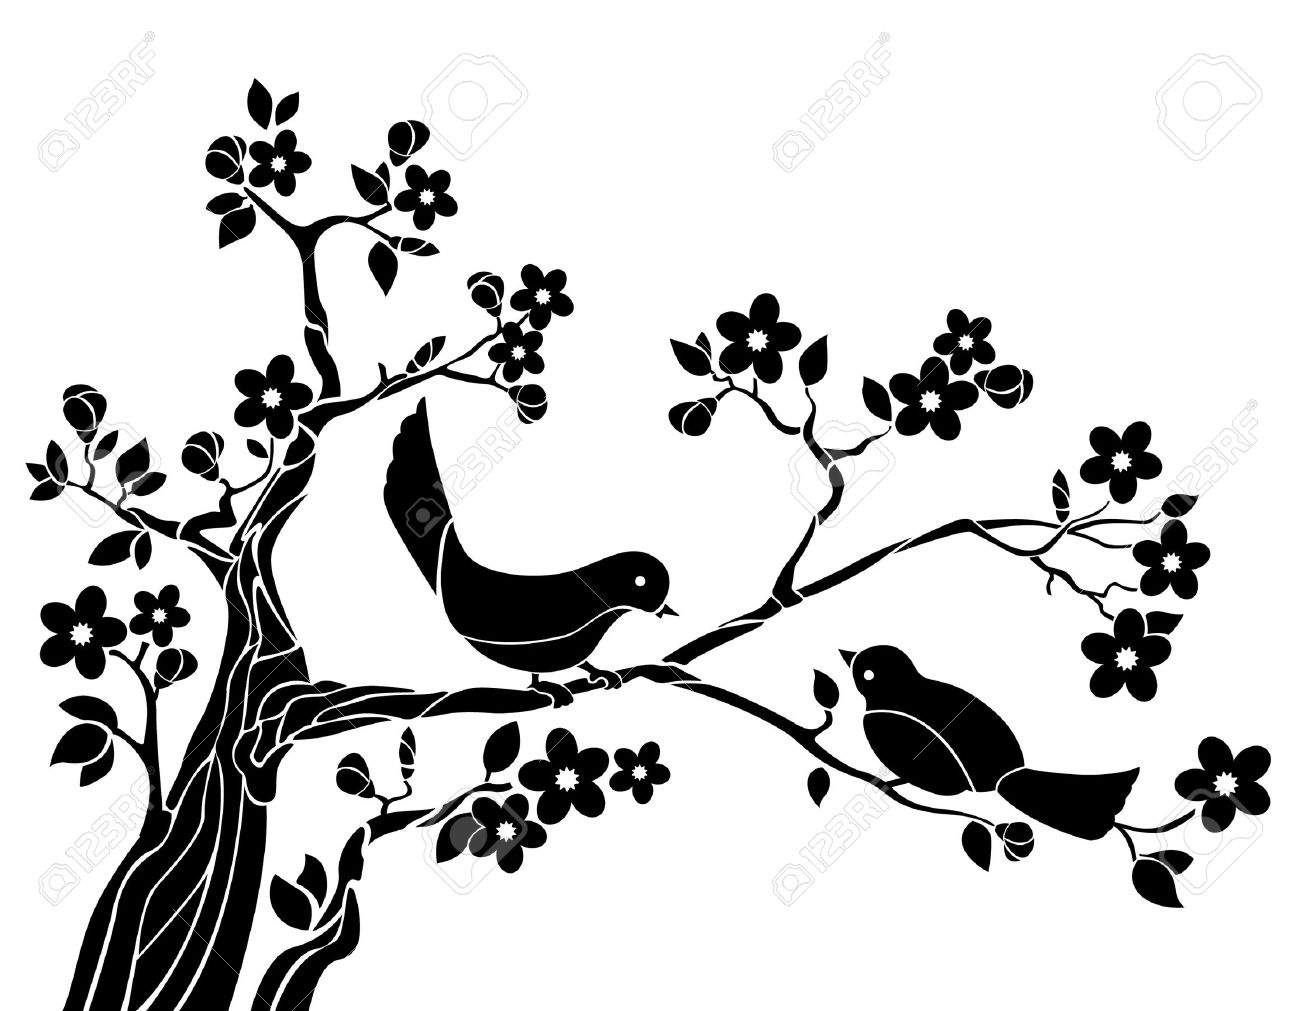 Bird On Tree Drawing at GetDrawings